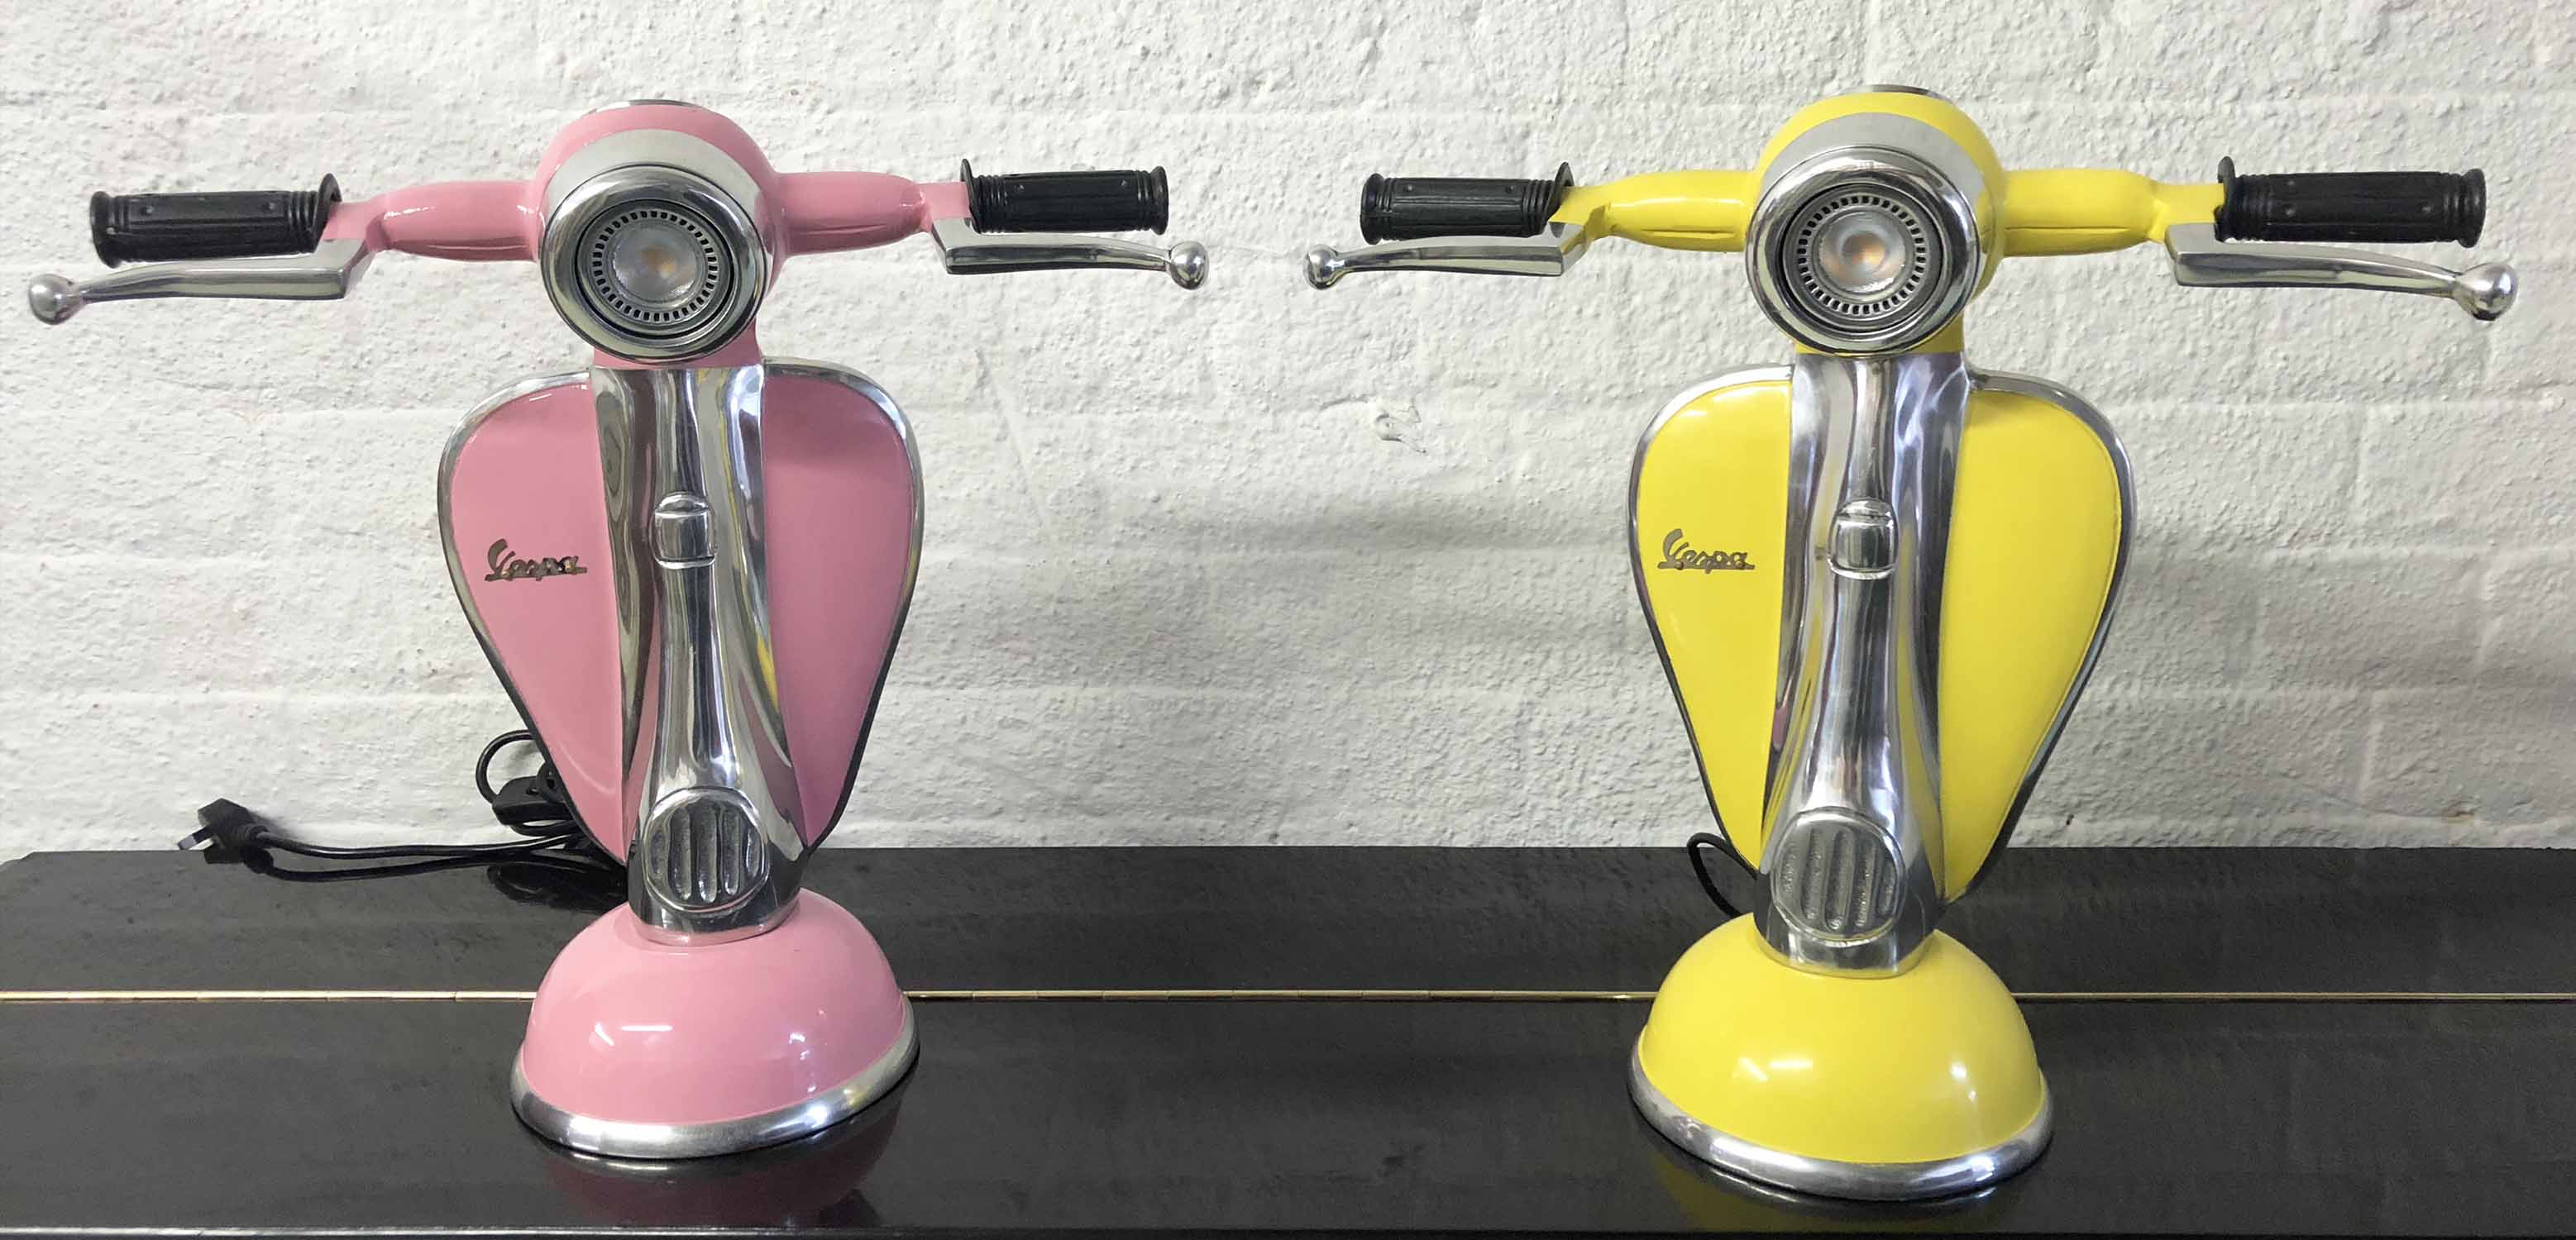 Lot 20 - VESPA SCOOTER TABLE LAMPS, two, cast aluminium yellow and pink designs, 41.5cm H.